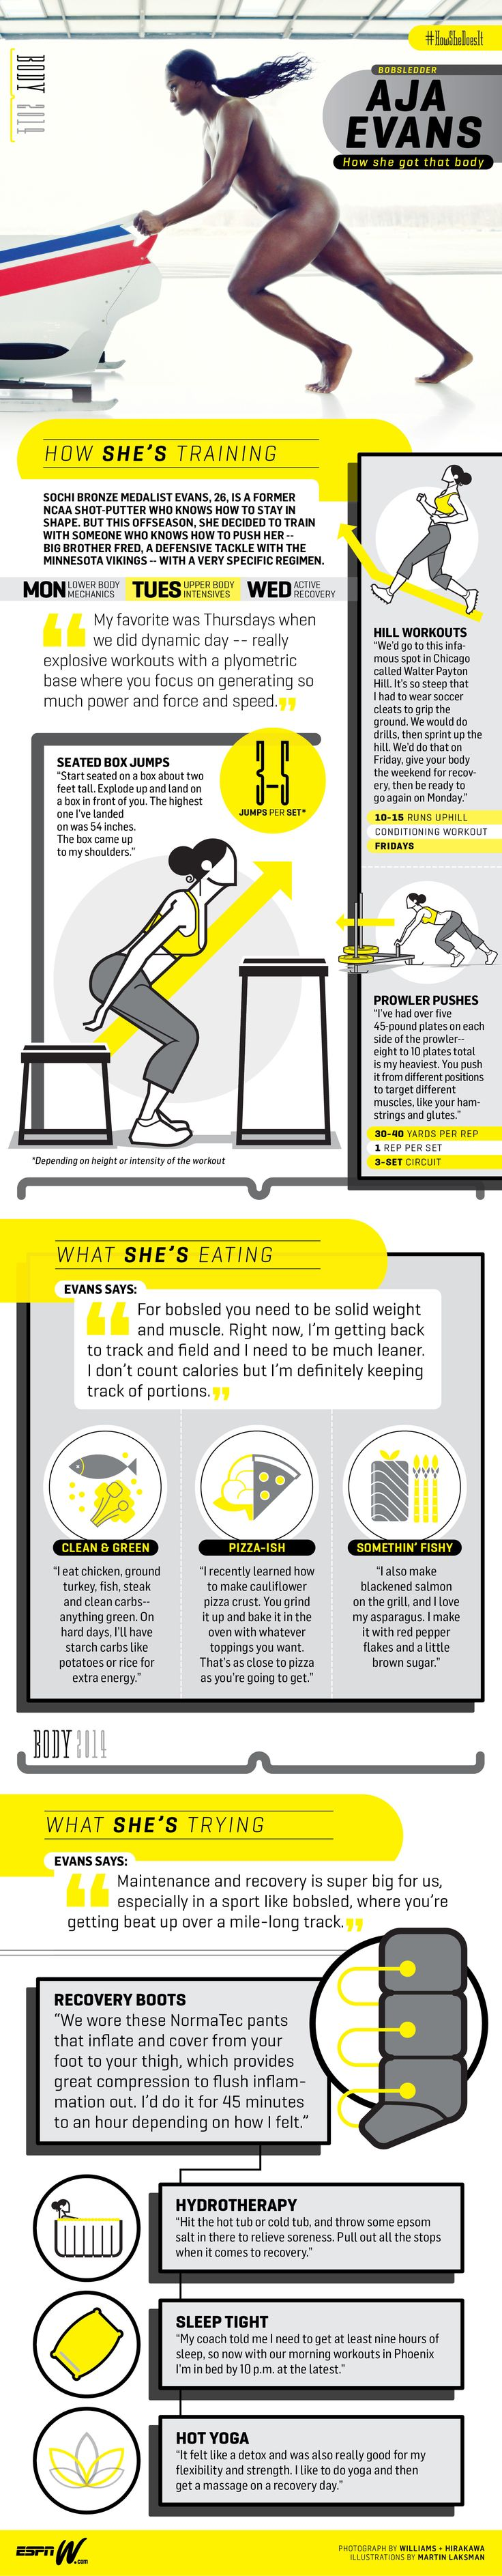 Infographic -- How Aja Evans Got That Body for ESPN The Body #HowSheDoesIt